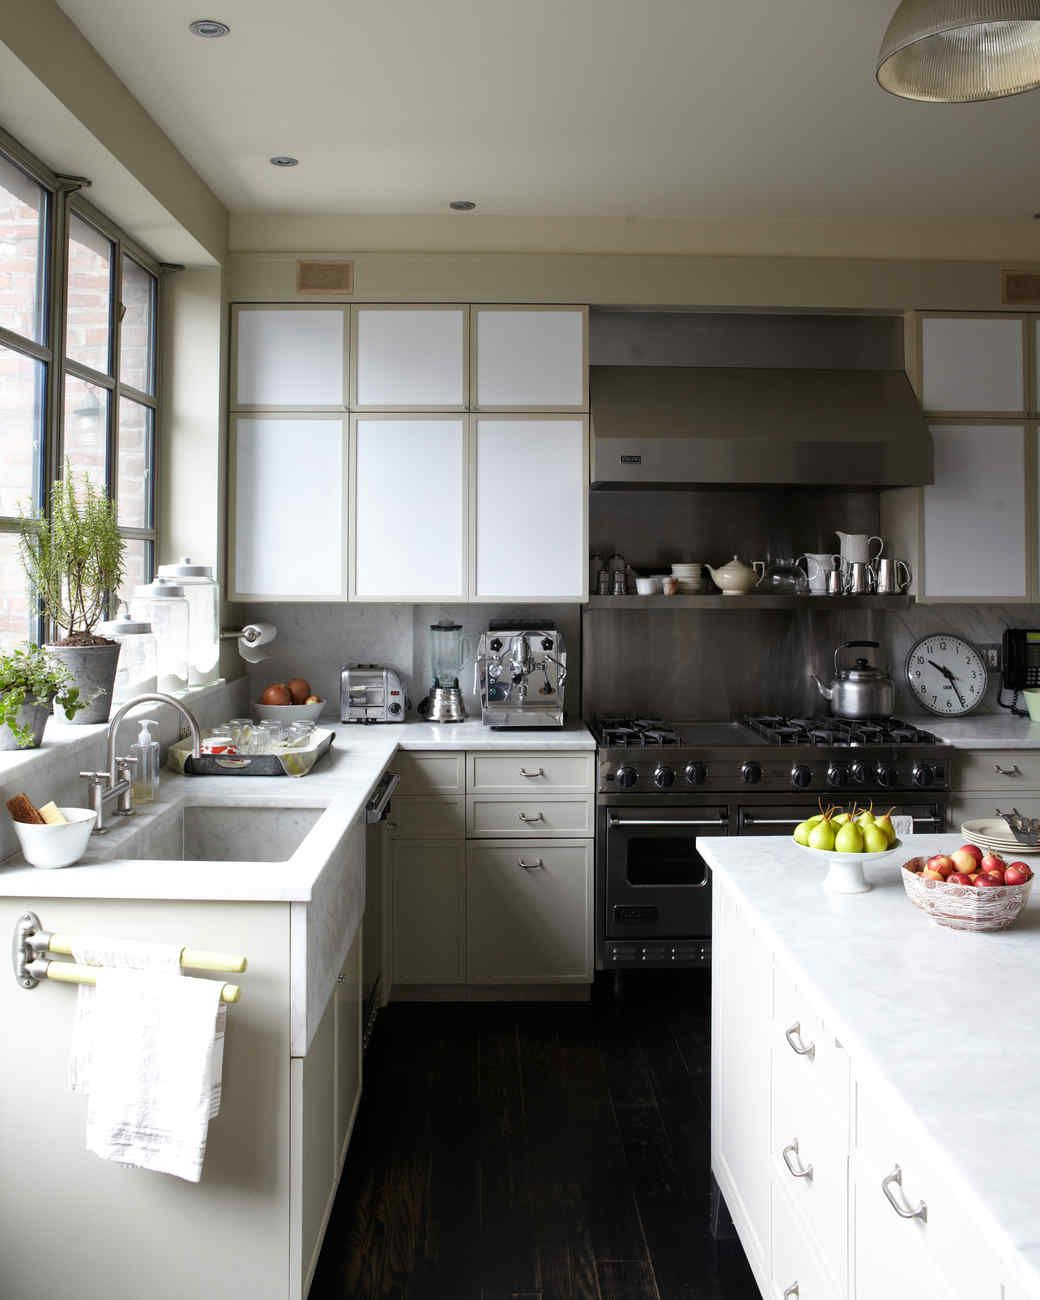 Our Favorite Kitchens: Our Favorite Kitchen Styles